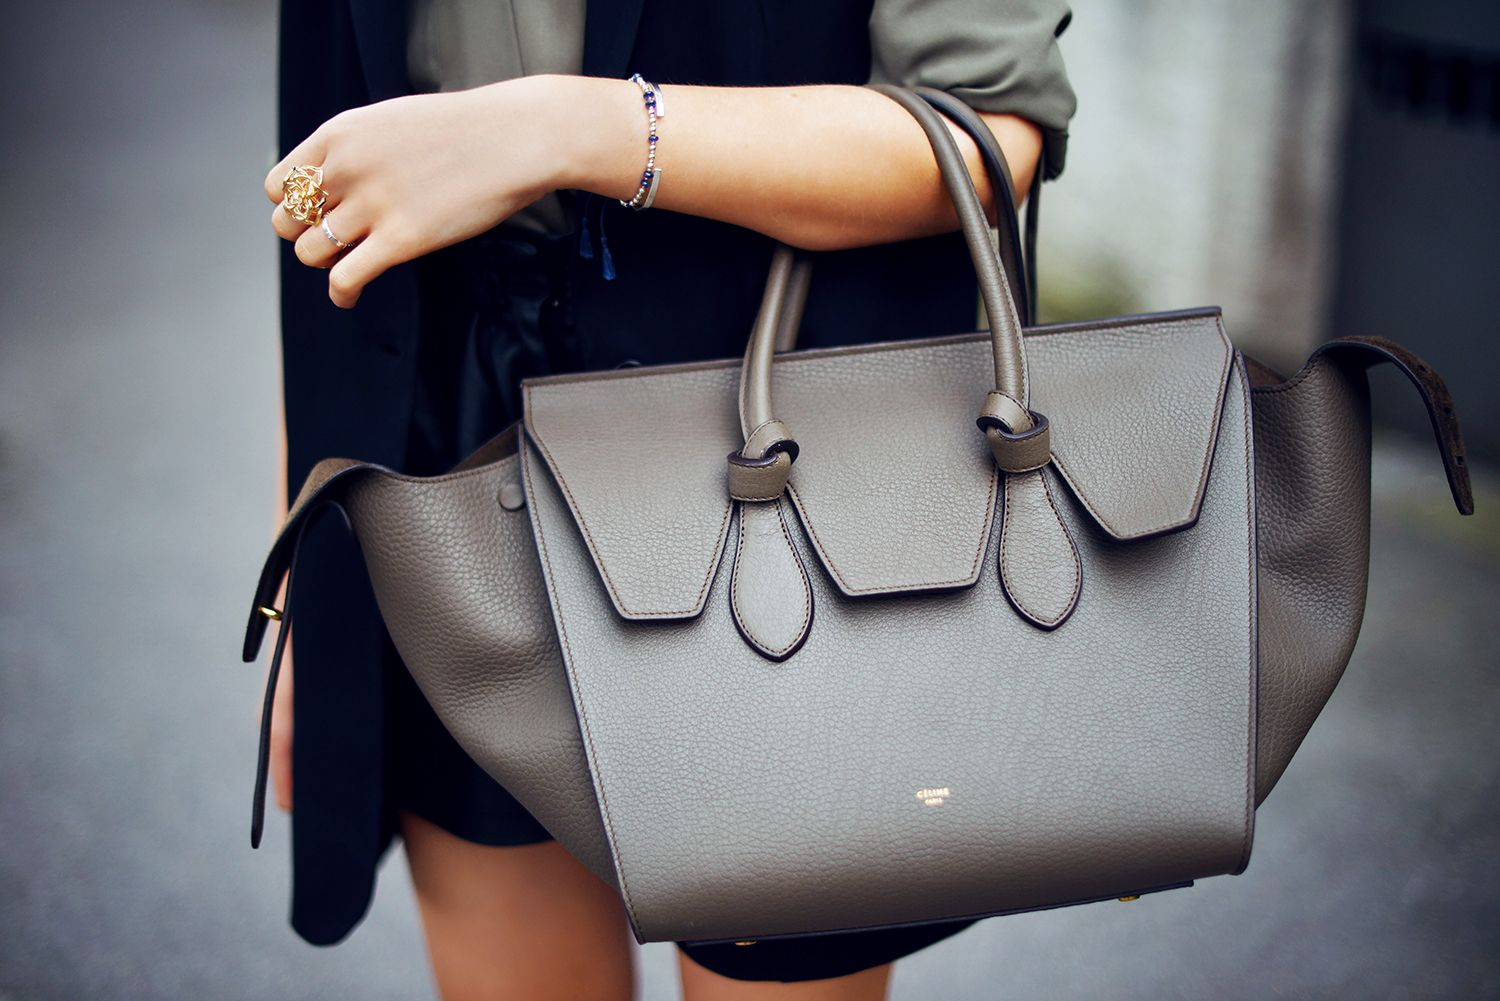 Celine Tie Tote My Bag Of The Moment